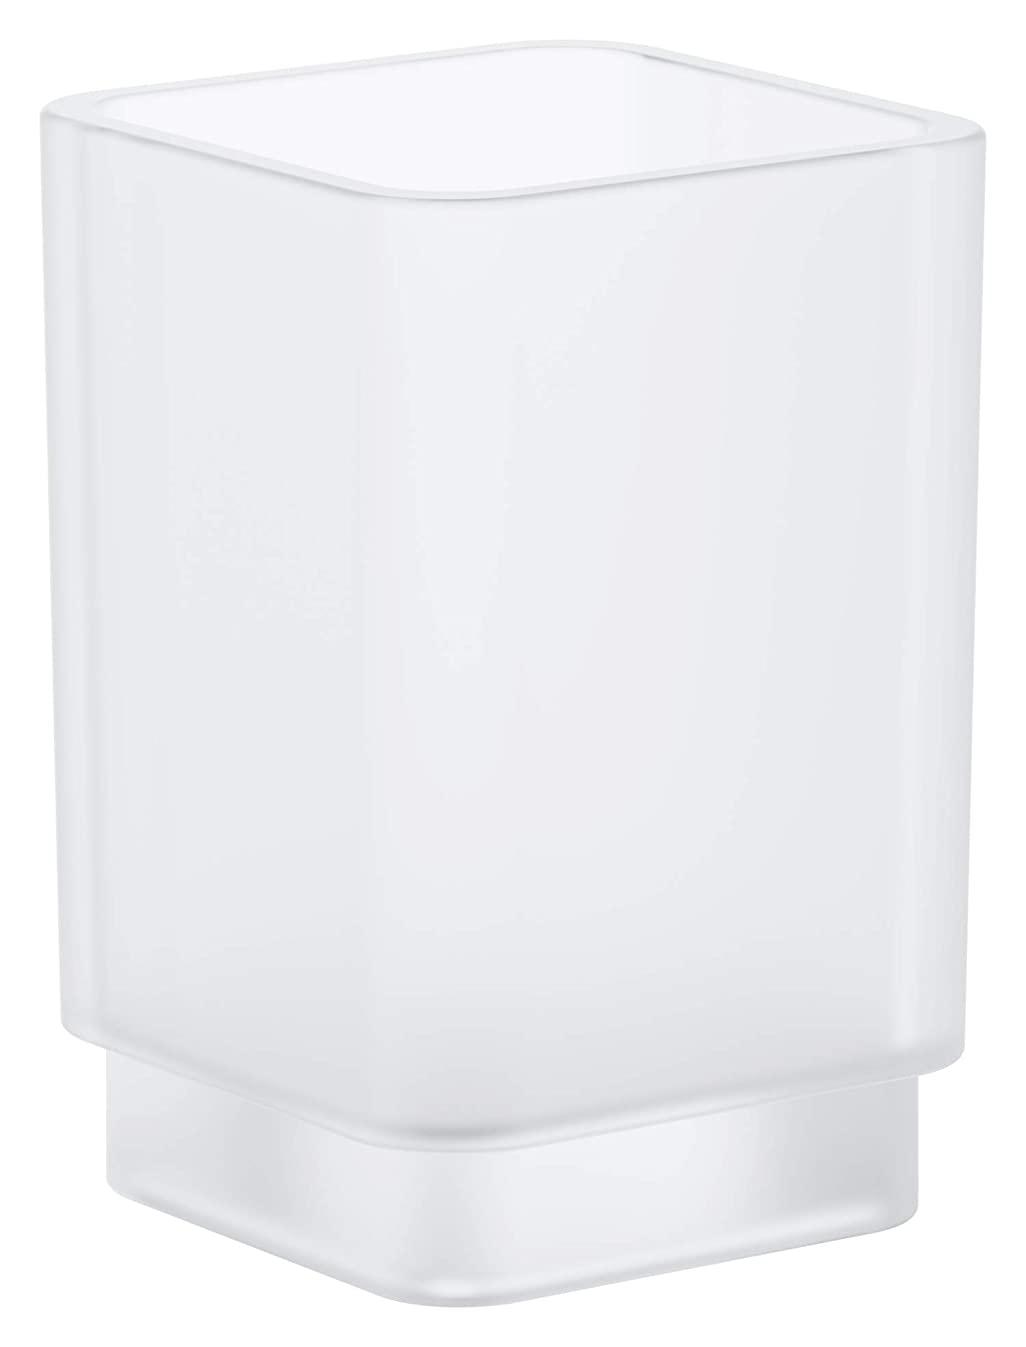 Grohe 40783000 Selection Cube Glass, Starlight Chrome